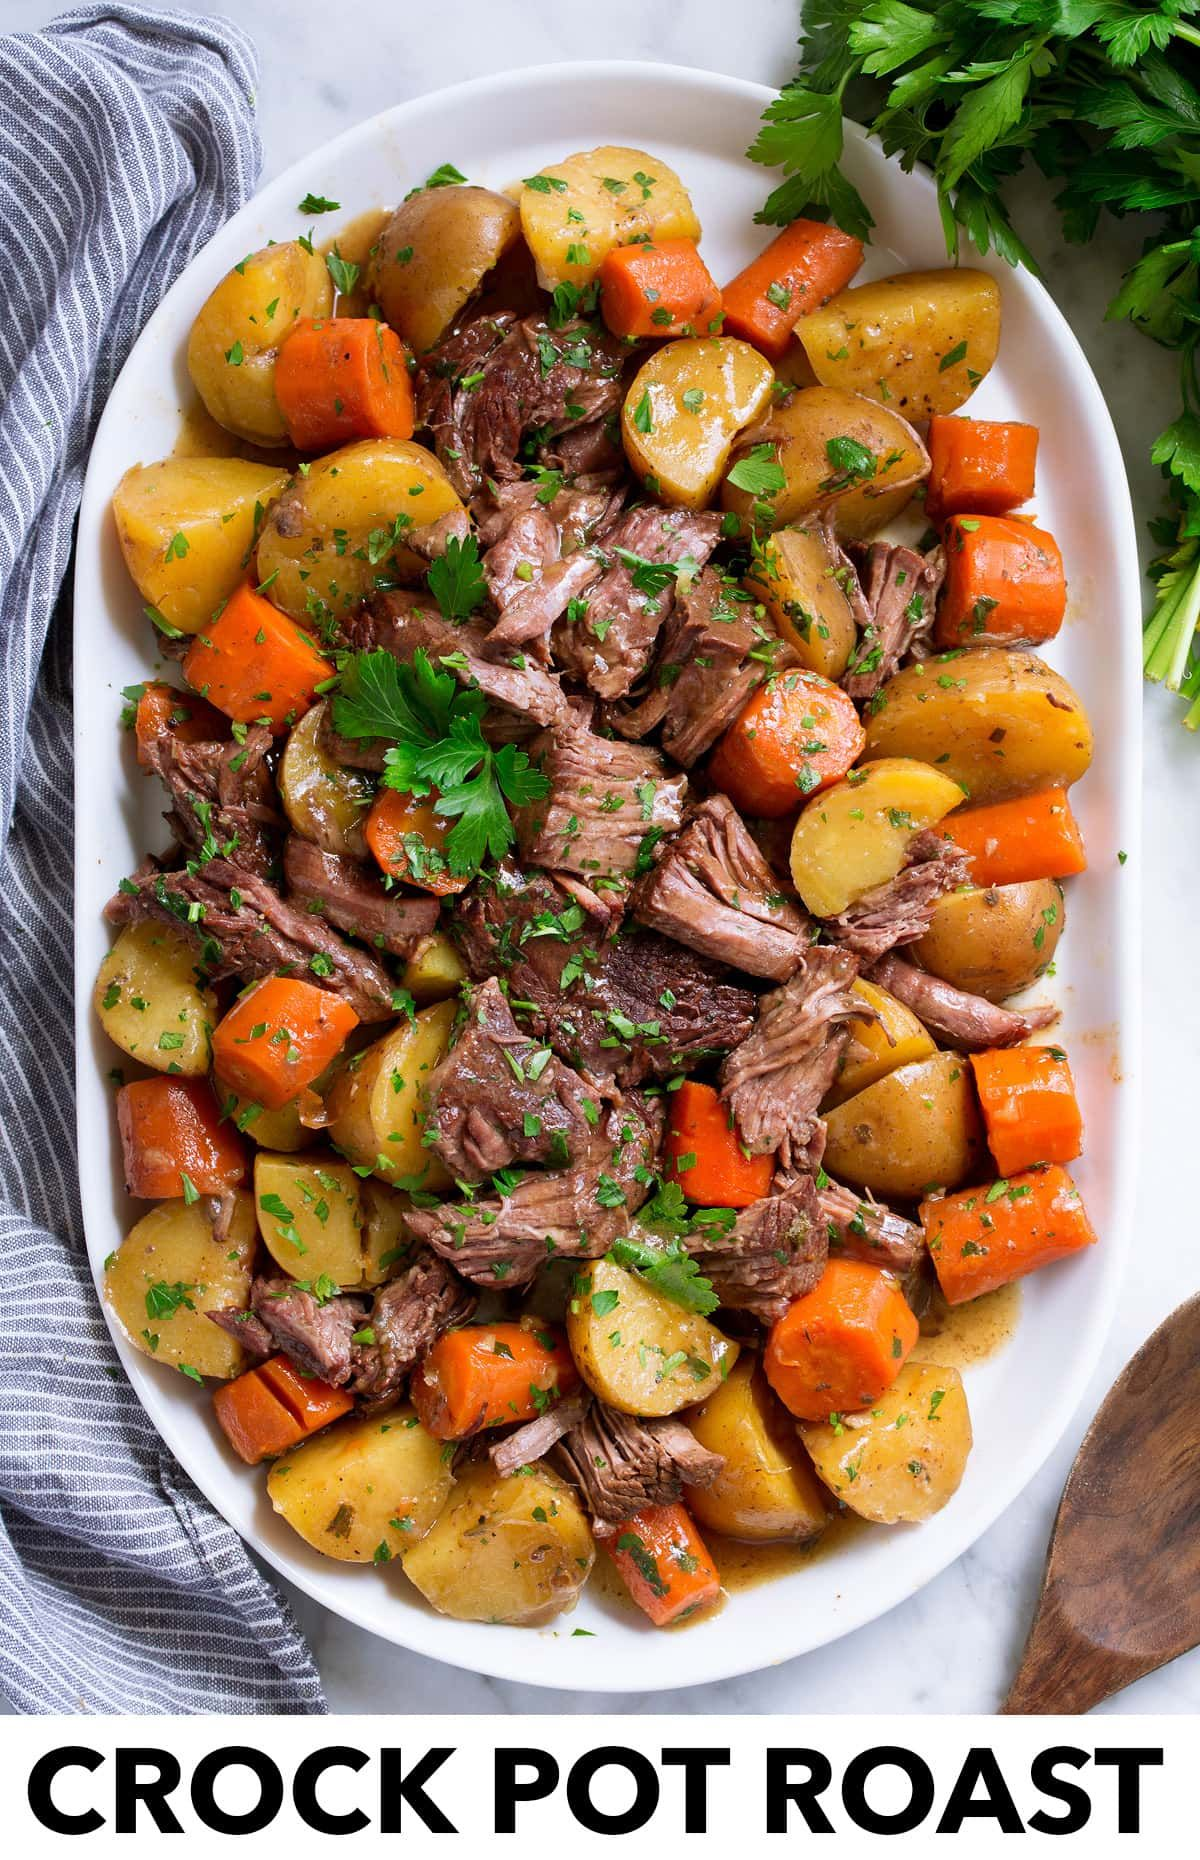 Best Ever Crock Pot Roast! Easy, flavorful and love that the veggies are mush! #crockpot #slowcooker #roast #beef